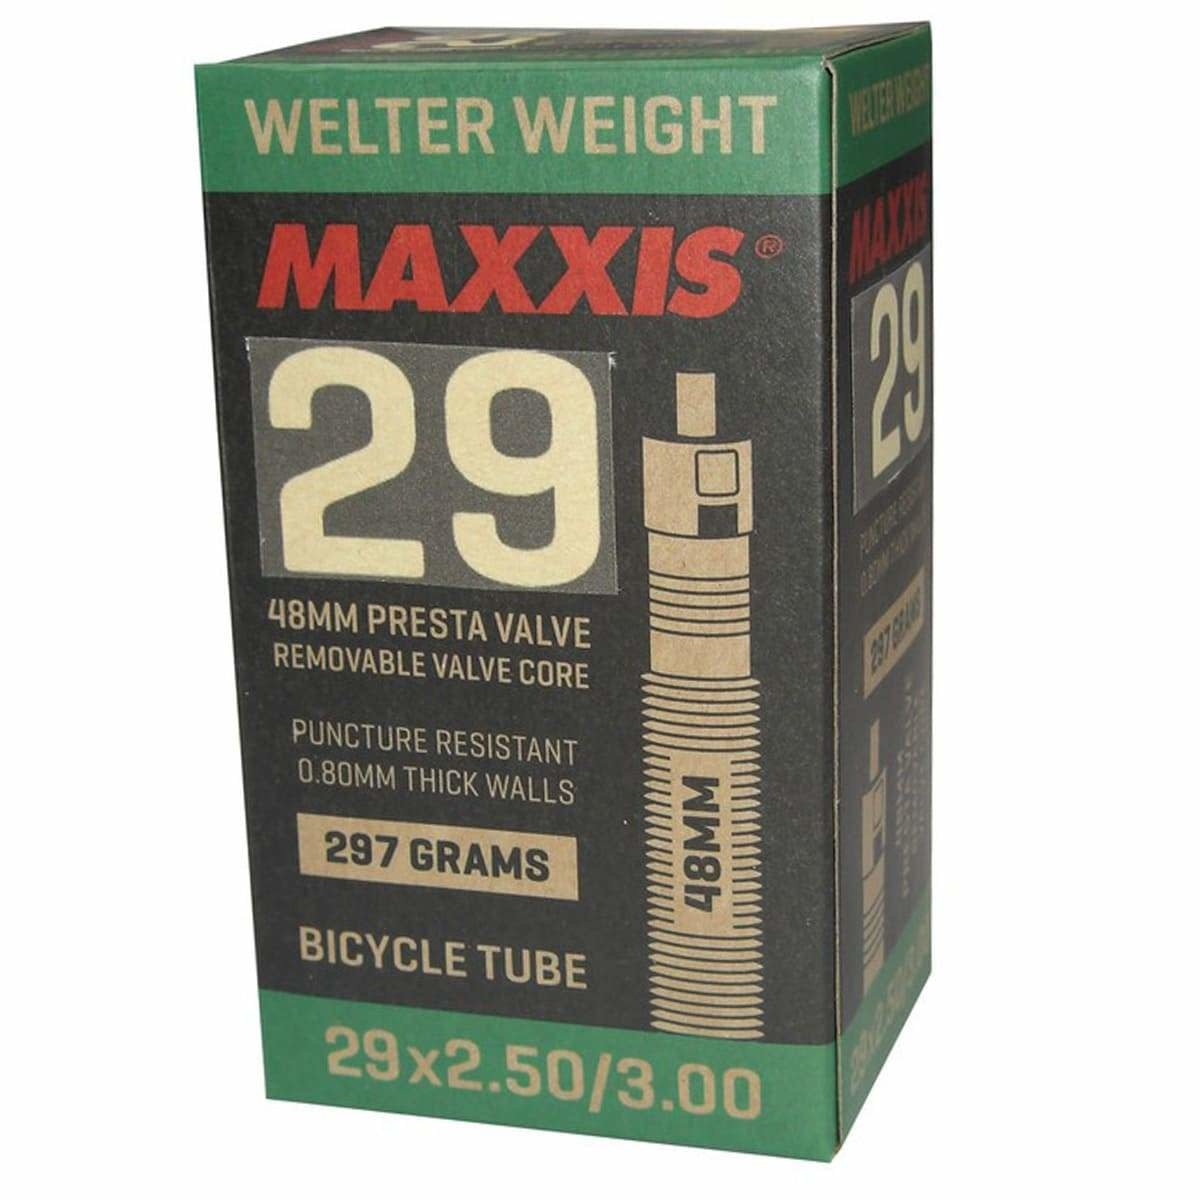 Maxxis Maxxis, Plus Tube Presta, Tube, Presta, Length: 48mm, 29'', 2.5-3.0